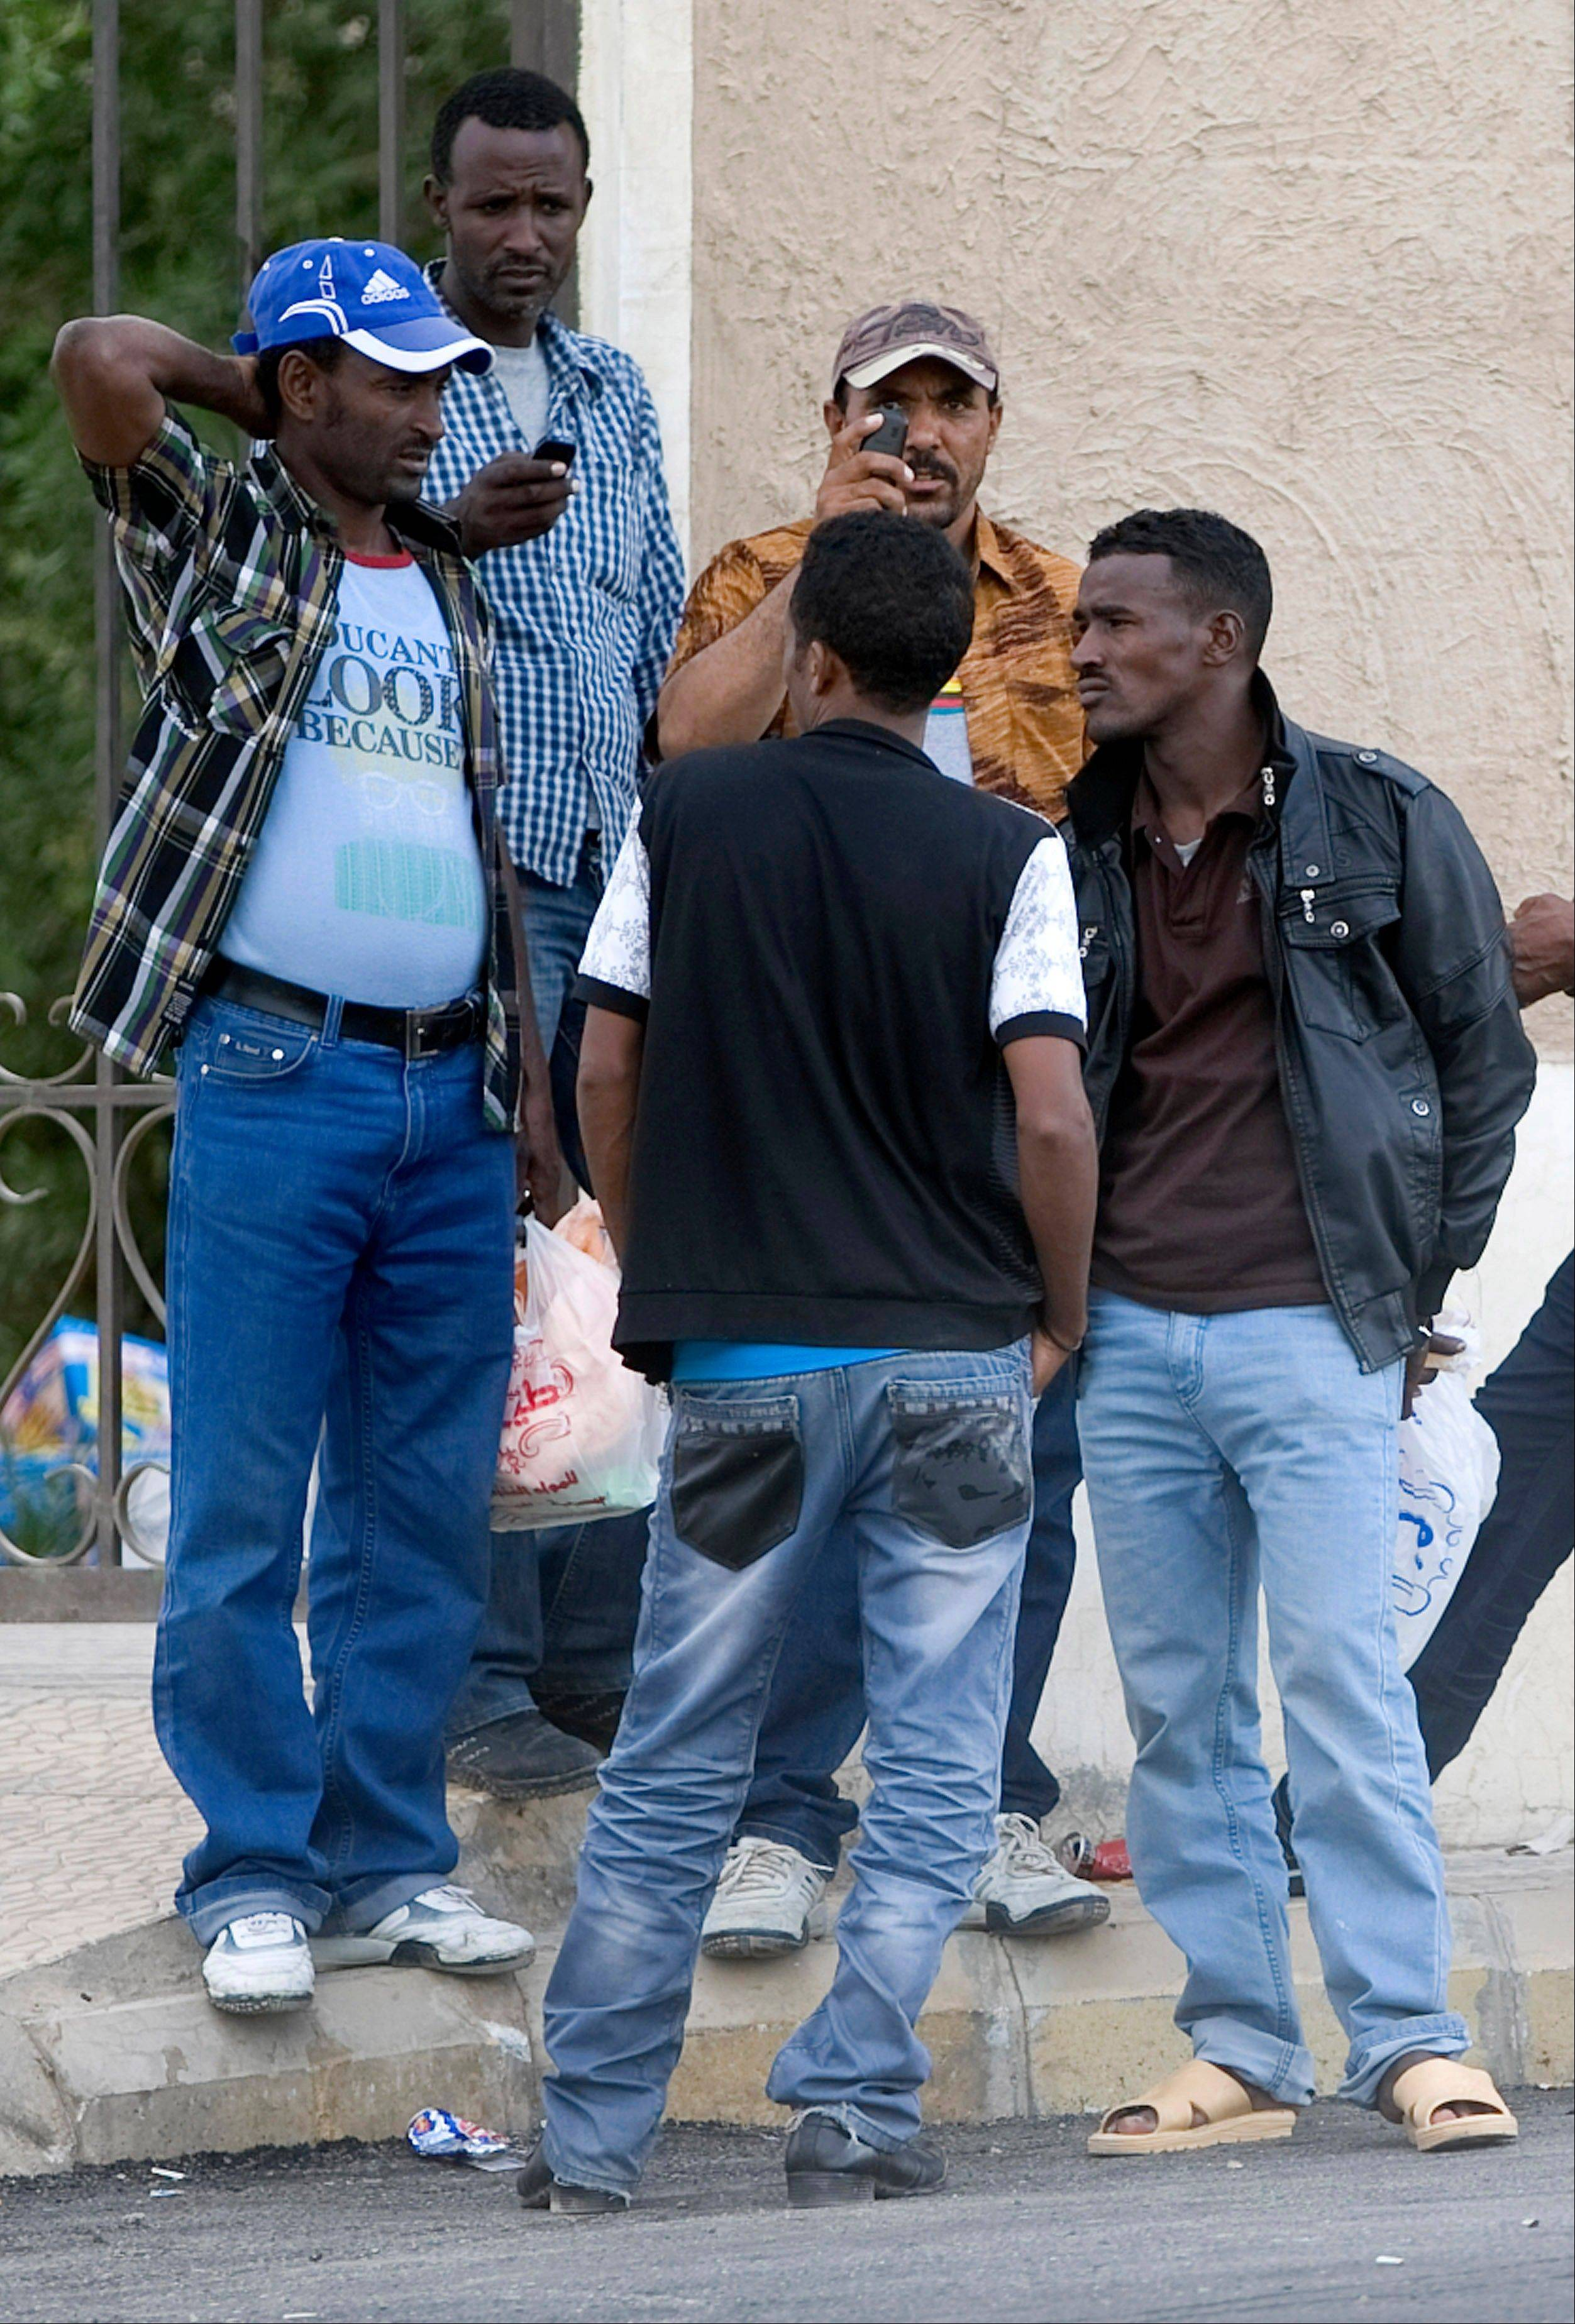 Ethiopians gather as they wait to be repatriated in Saudi Arabia. The country's crackdown on migrant workers, which began Nov. 4, targets the more than 9 million foreign laborers.